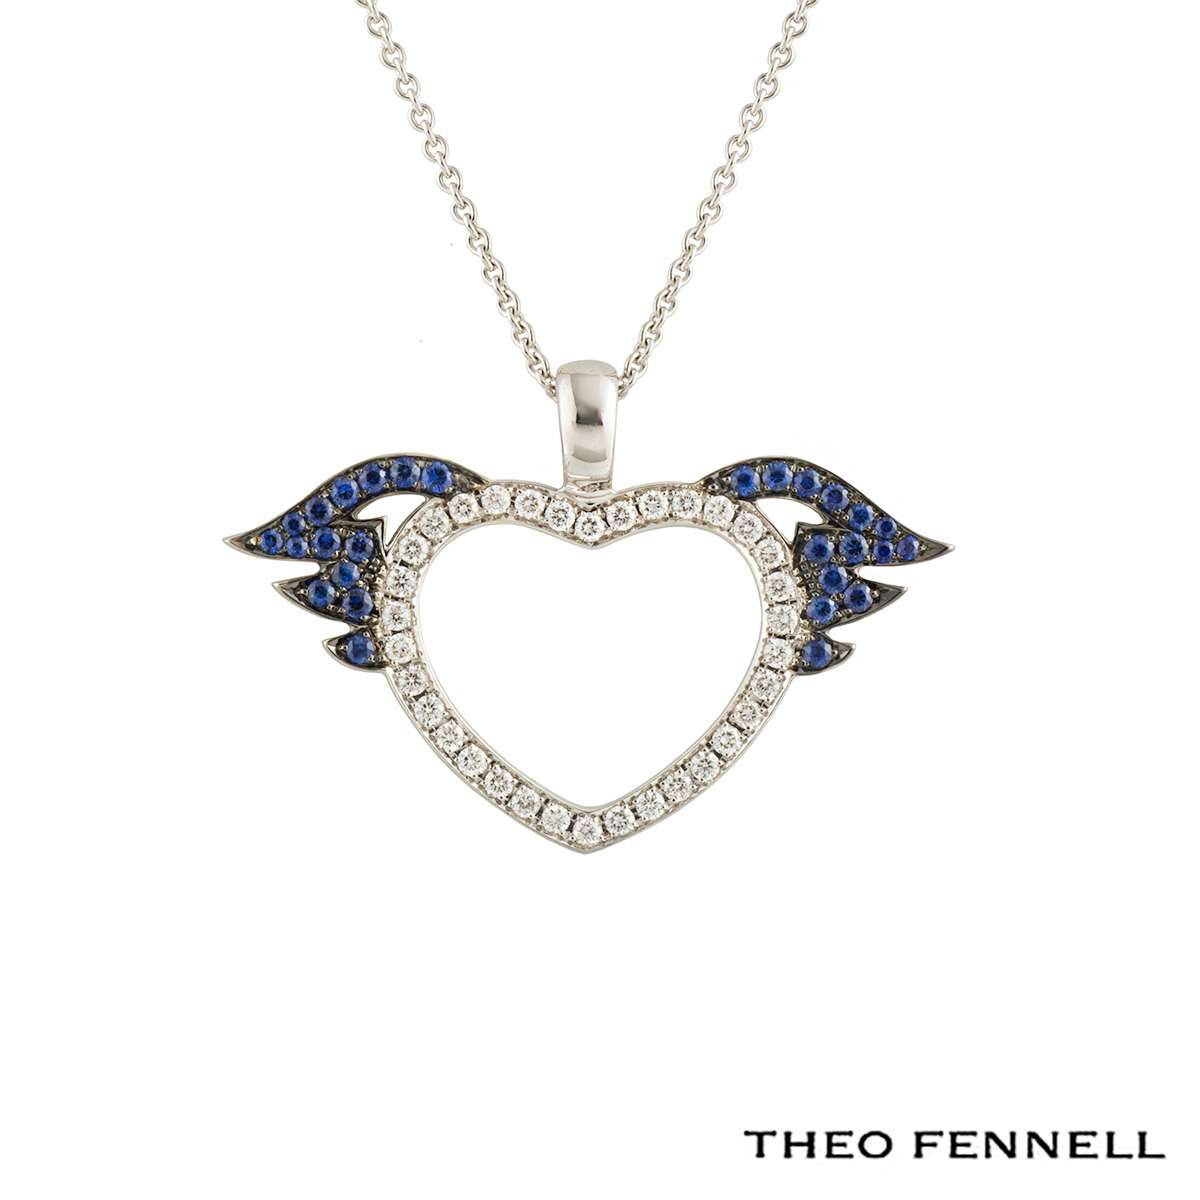 Theo Fennell Heart Pendant